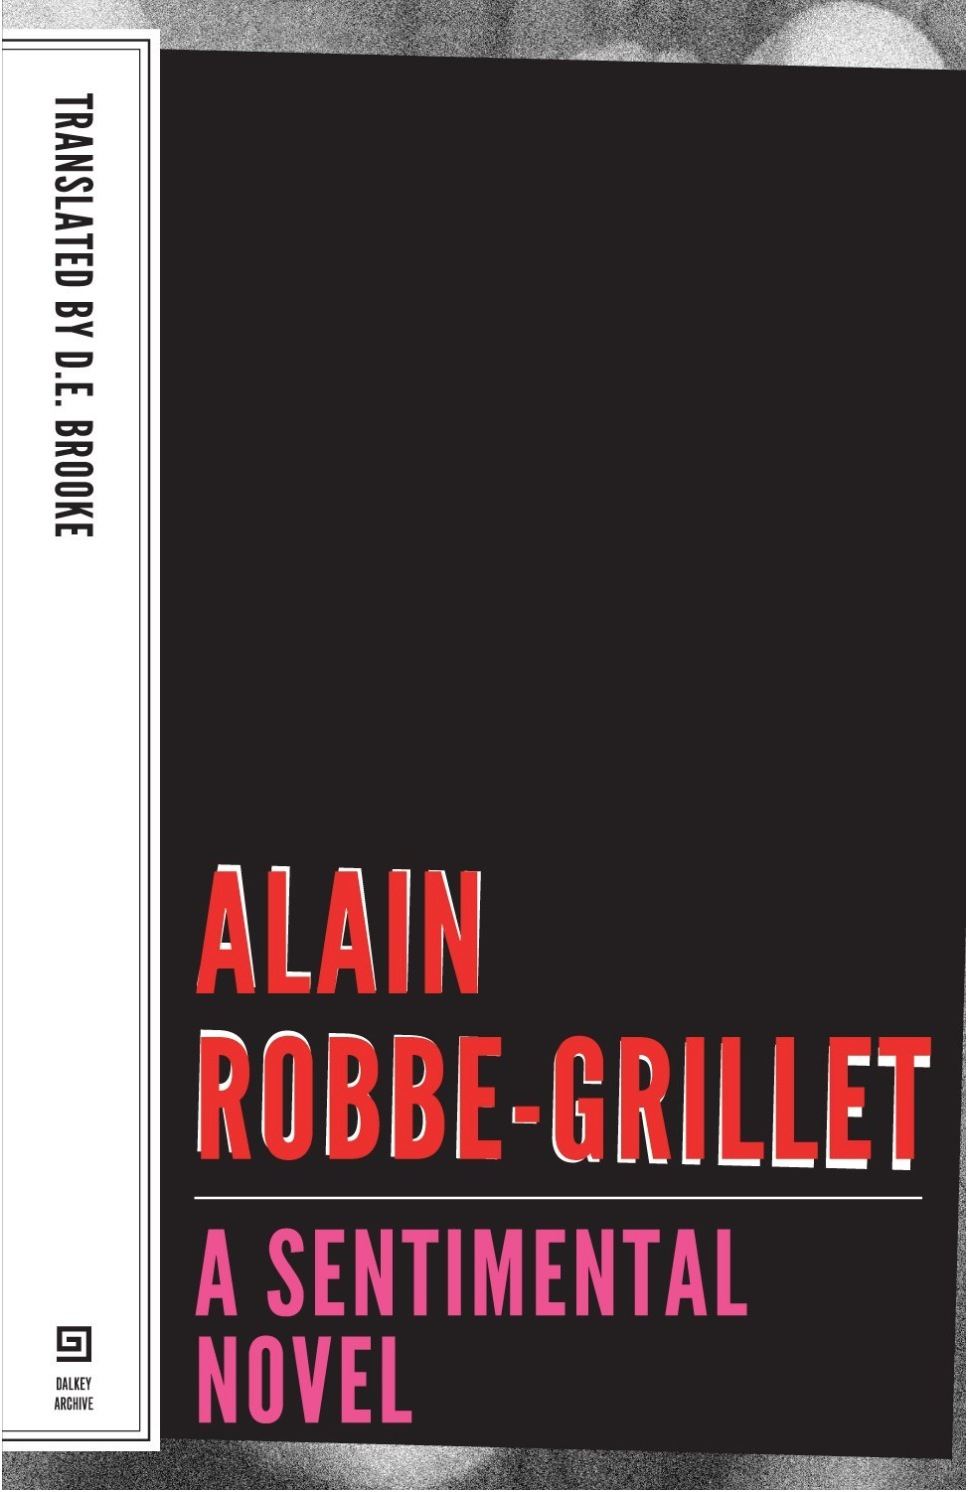 A Sentimental Novel, Alain Robbe-Grillet's final book, now available in English translation